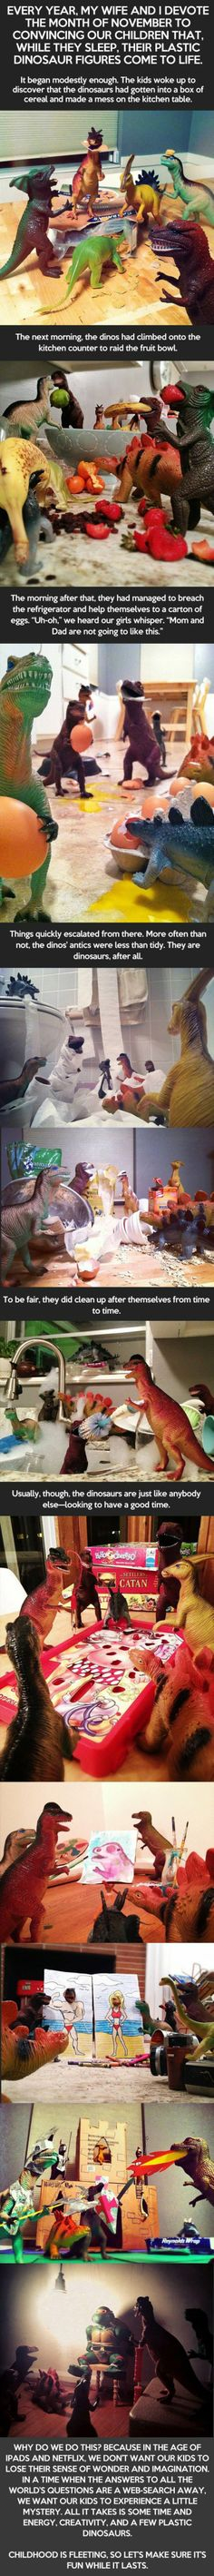 This is WAY better than any Elf on the Shelf antics I've seen!!! These parents are dedicated and talented. I mean, did you see the little dino painting and the body frames?? Completely adorbs! ❤